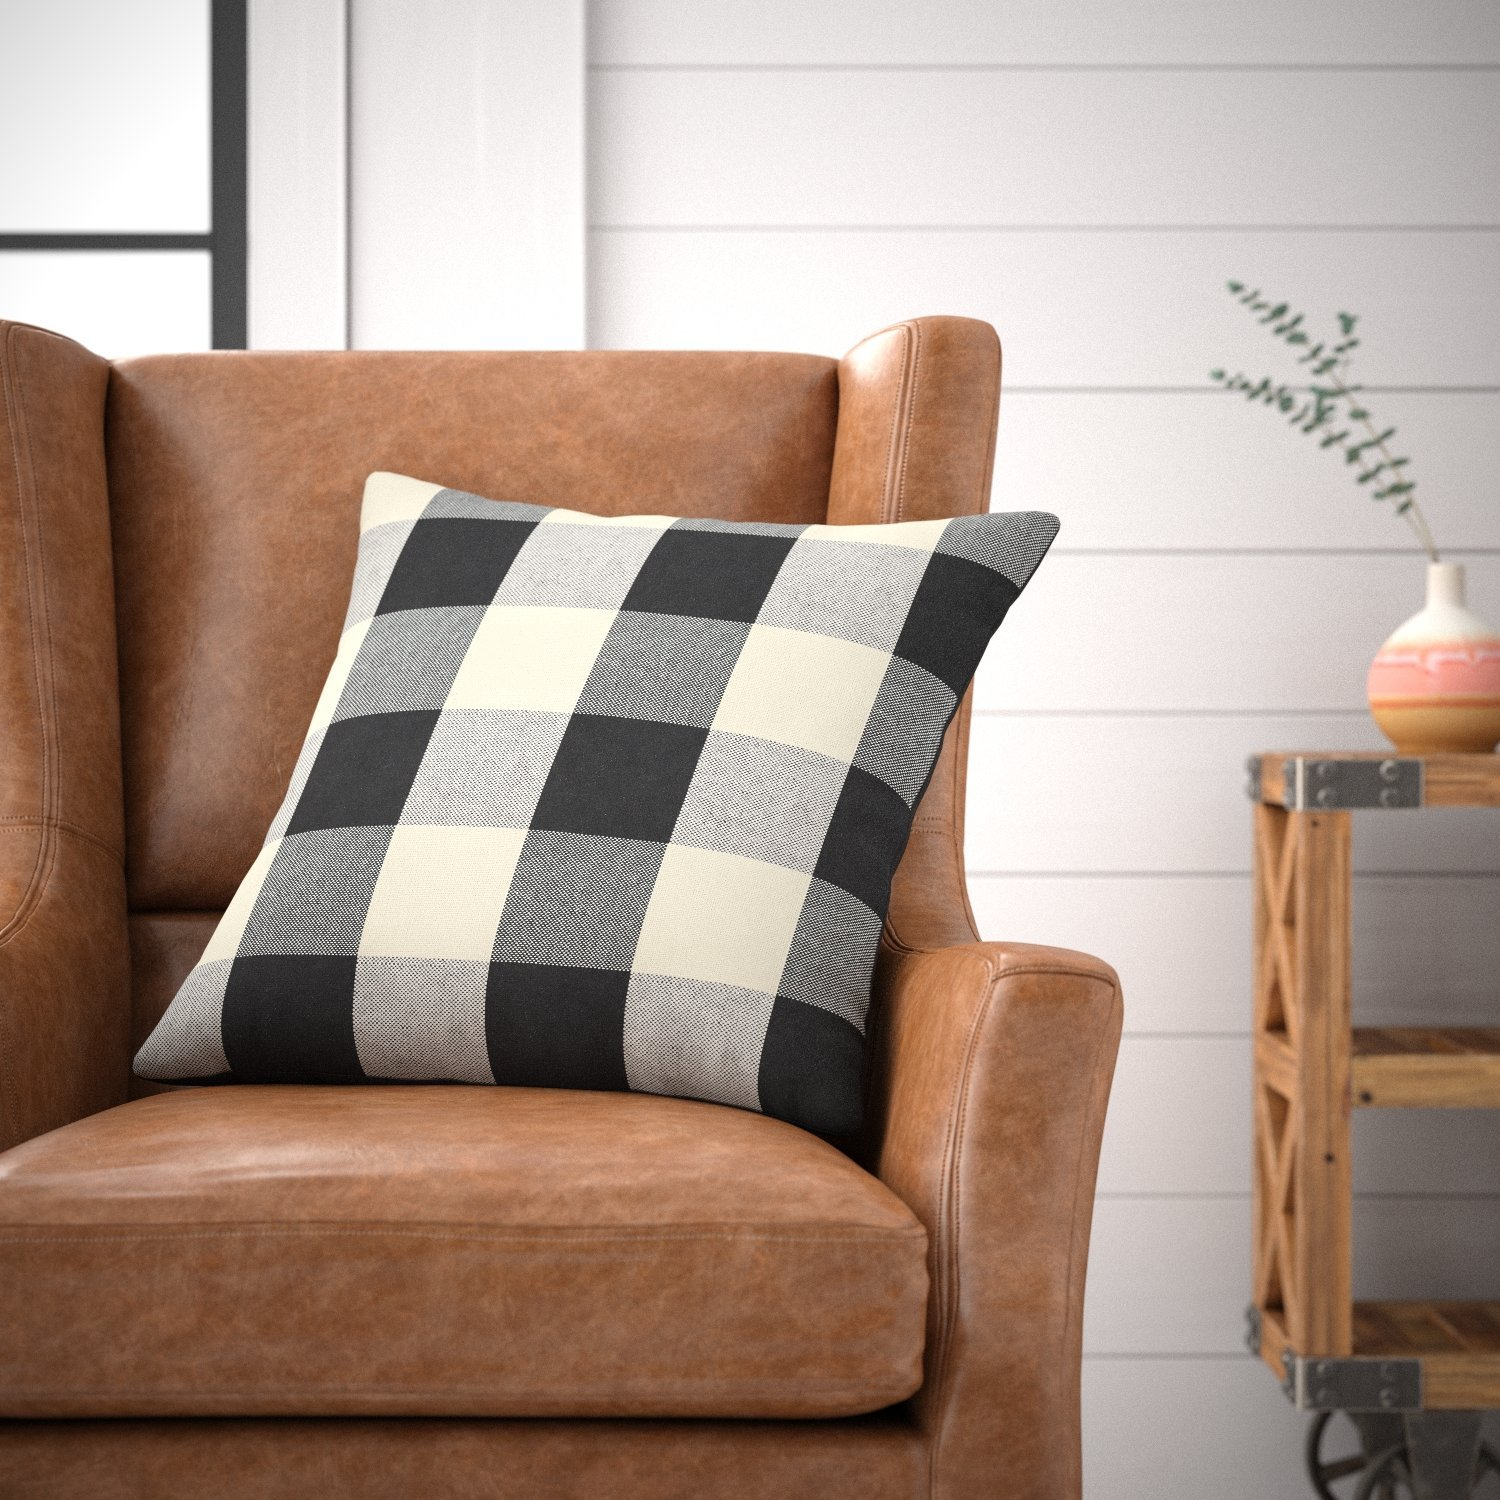 Black 20 x 20 0AITV 111136 Stone /& Beam Farmhouse Buffalo Check Plaid Throw Pillow 20 x 20 Cover Only